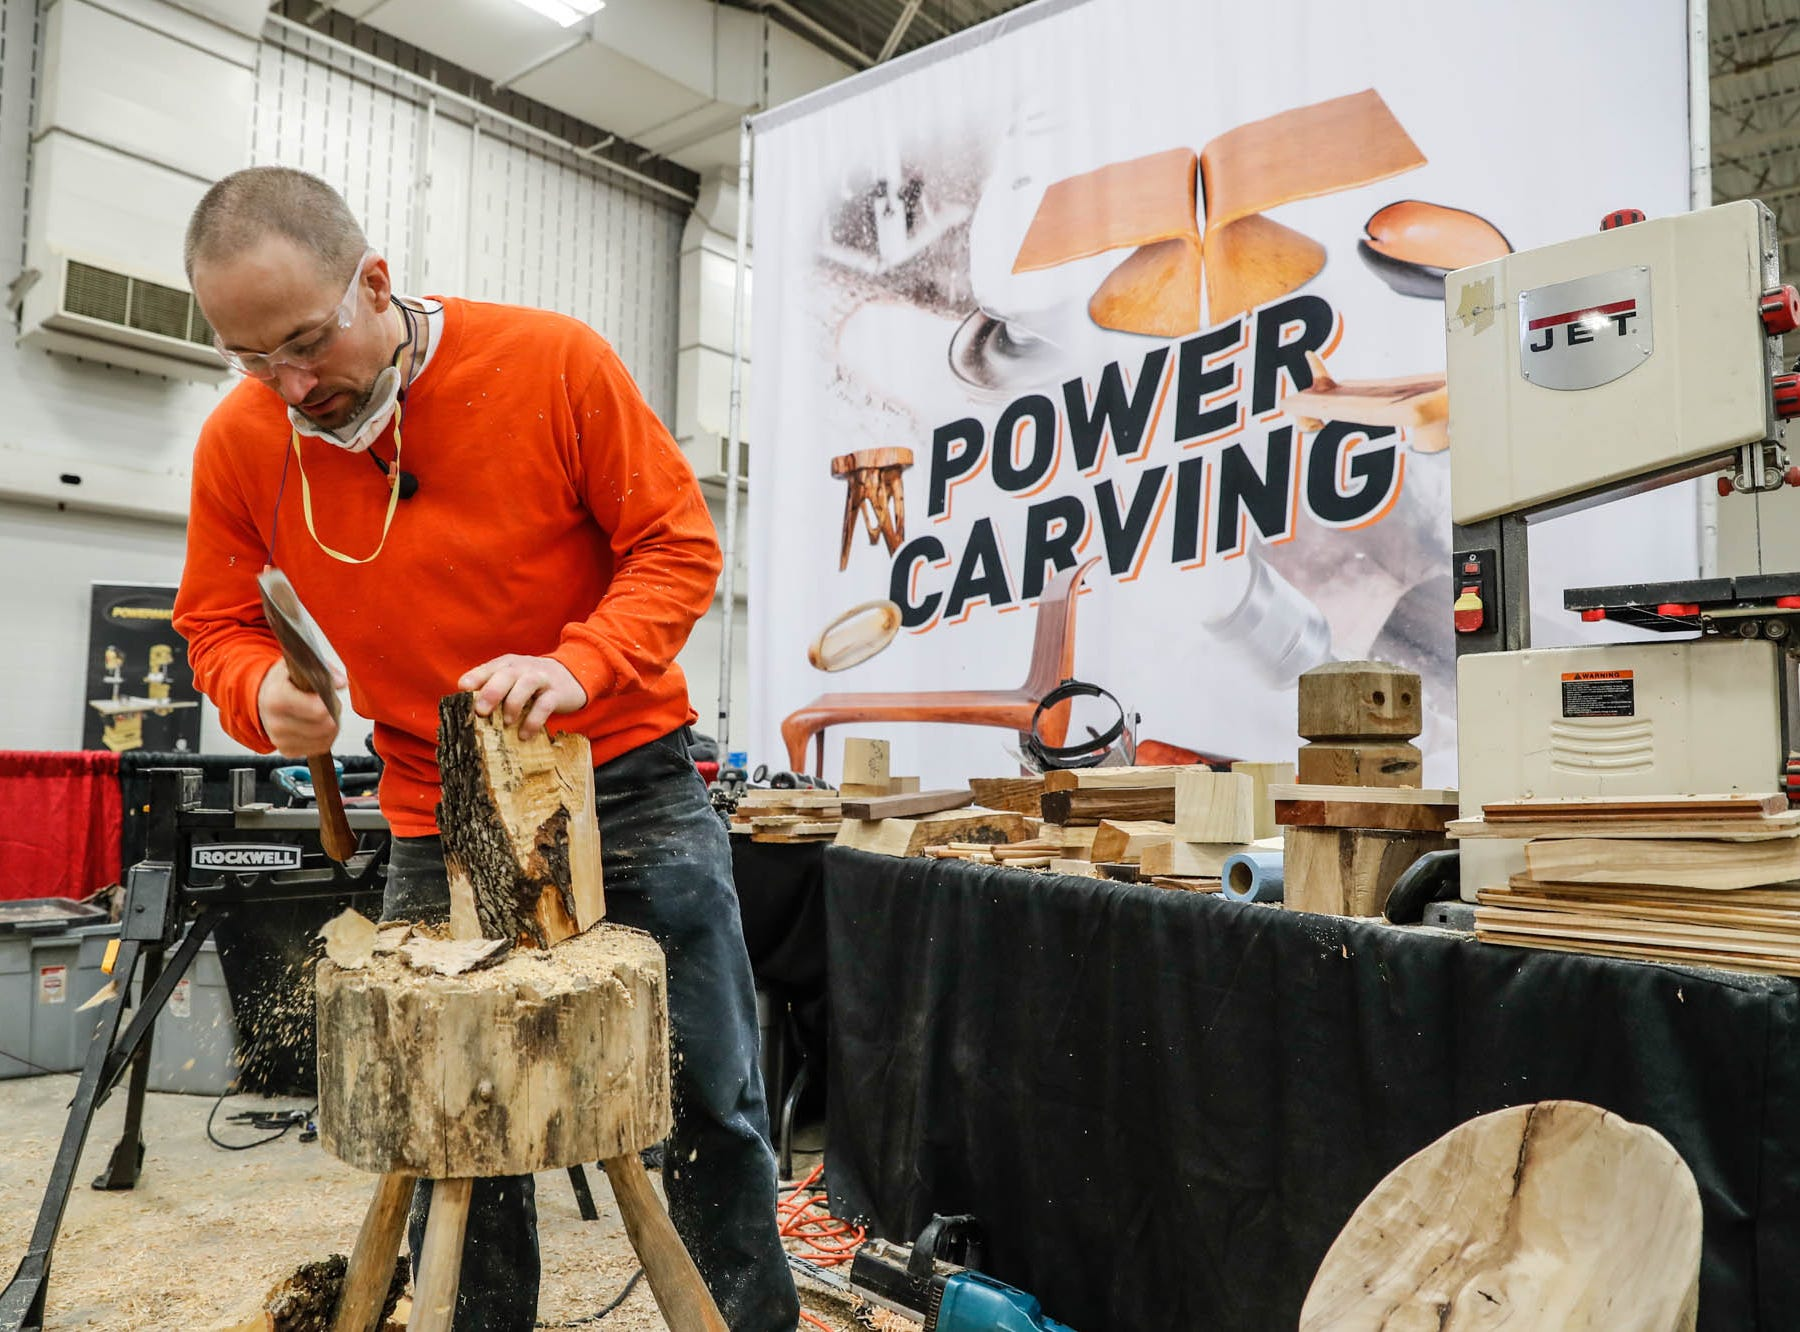 Tracey Cheuvrons works on creating a kitchen utensil from a piece of wood during a Wood Working Show at the Indiana State Fairgrounds in Indianapolis on Sunday, Feb. 3, 2019.